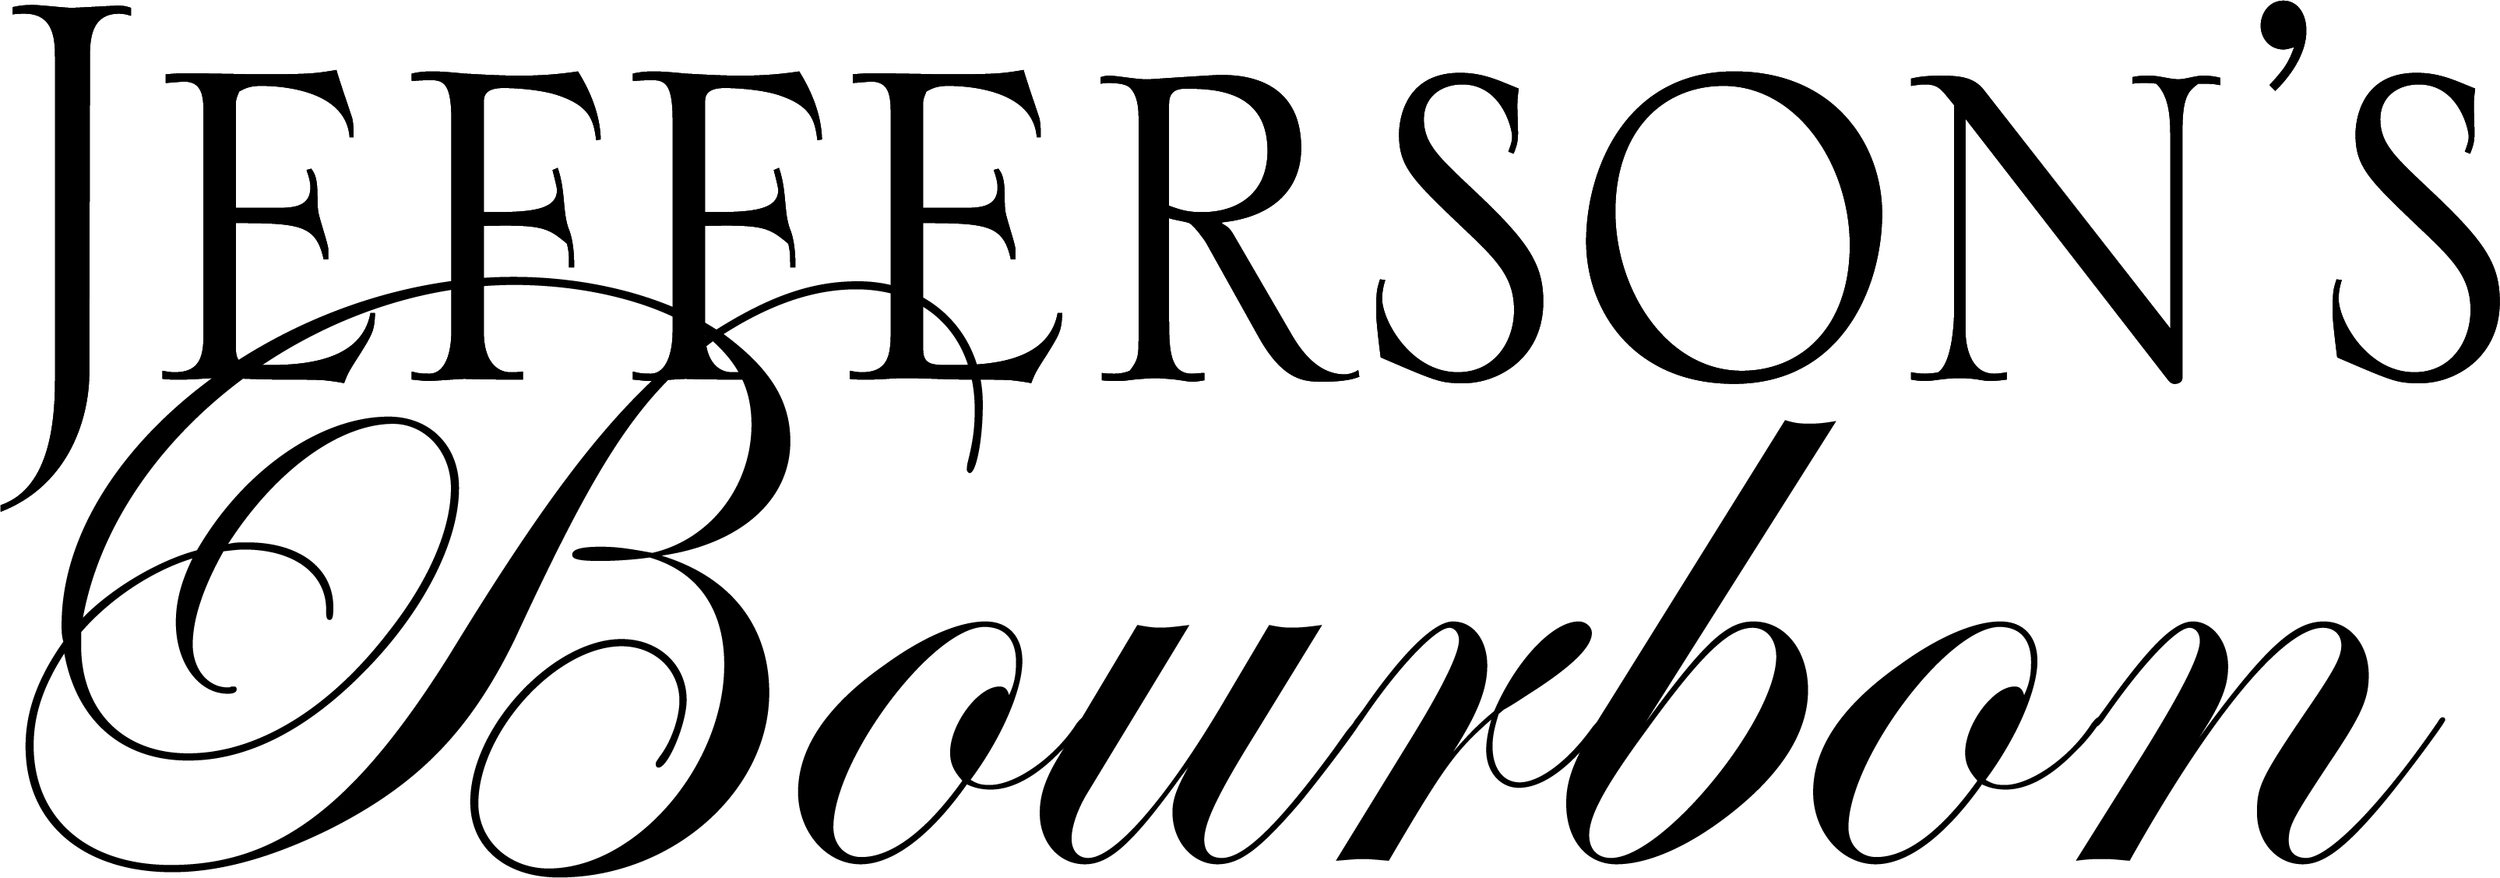 Jefferson's New POS Logo BLACK.jpg